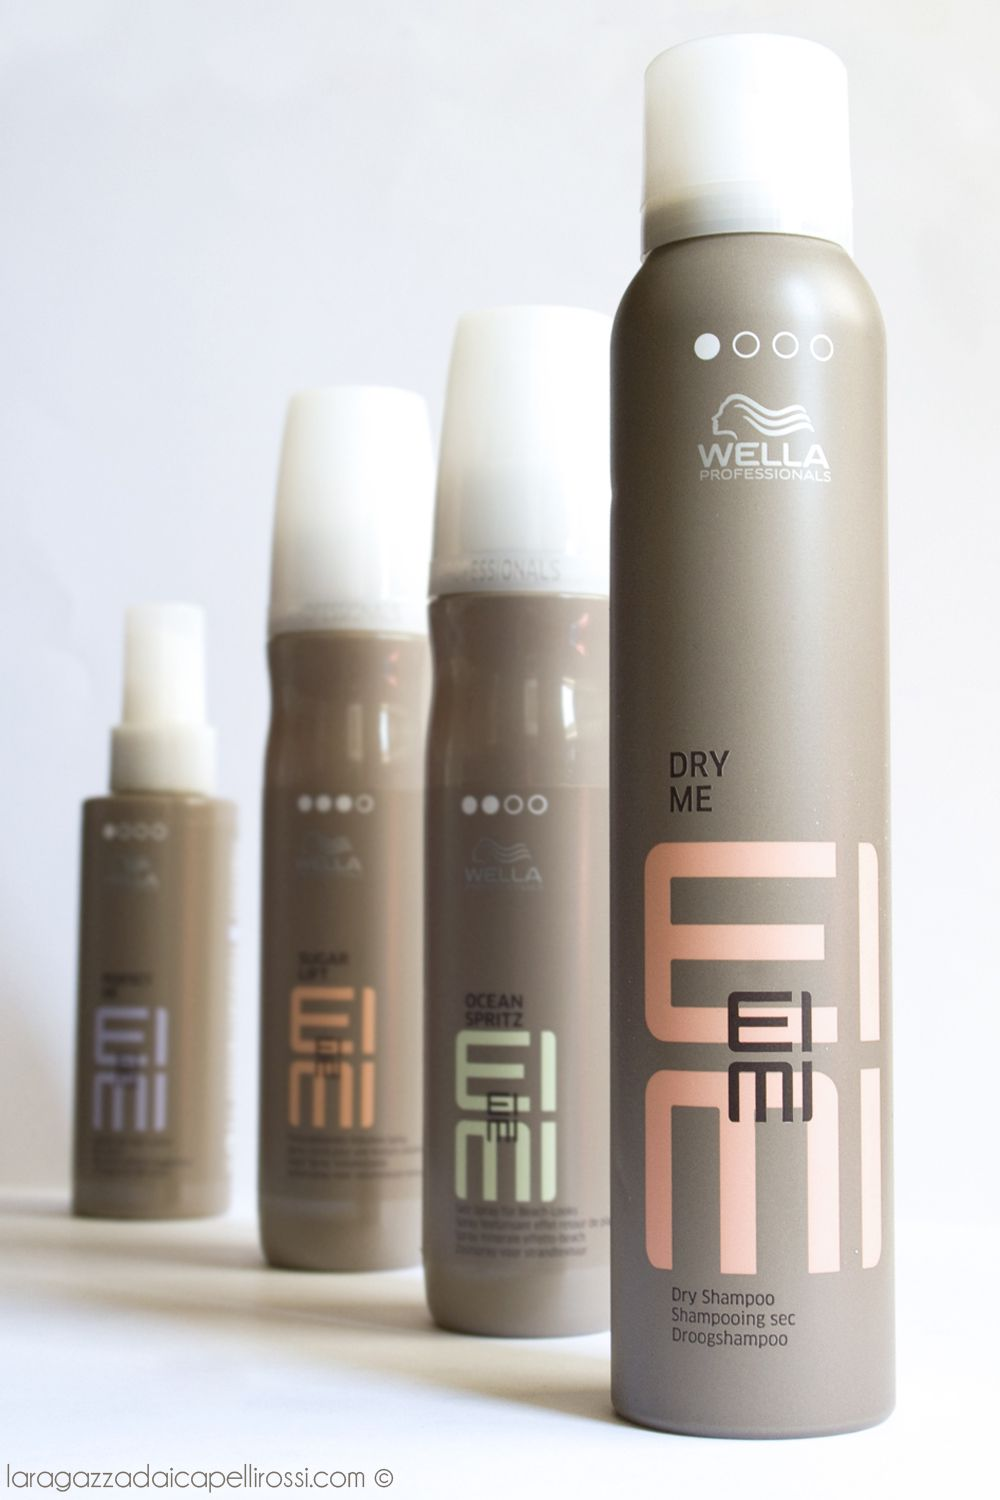 EIMI by Wella Professional